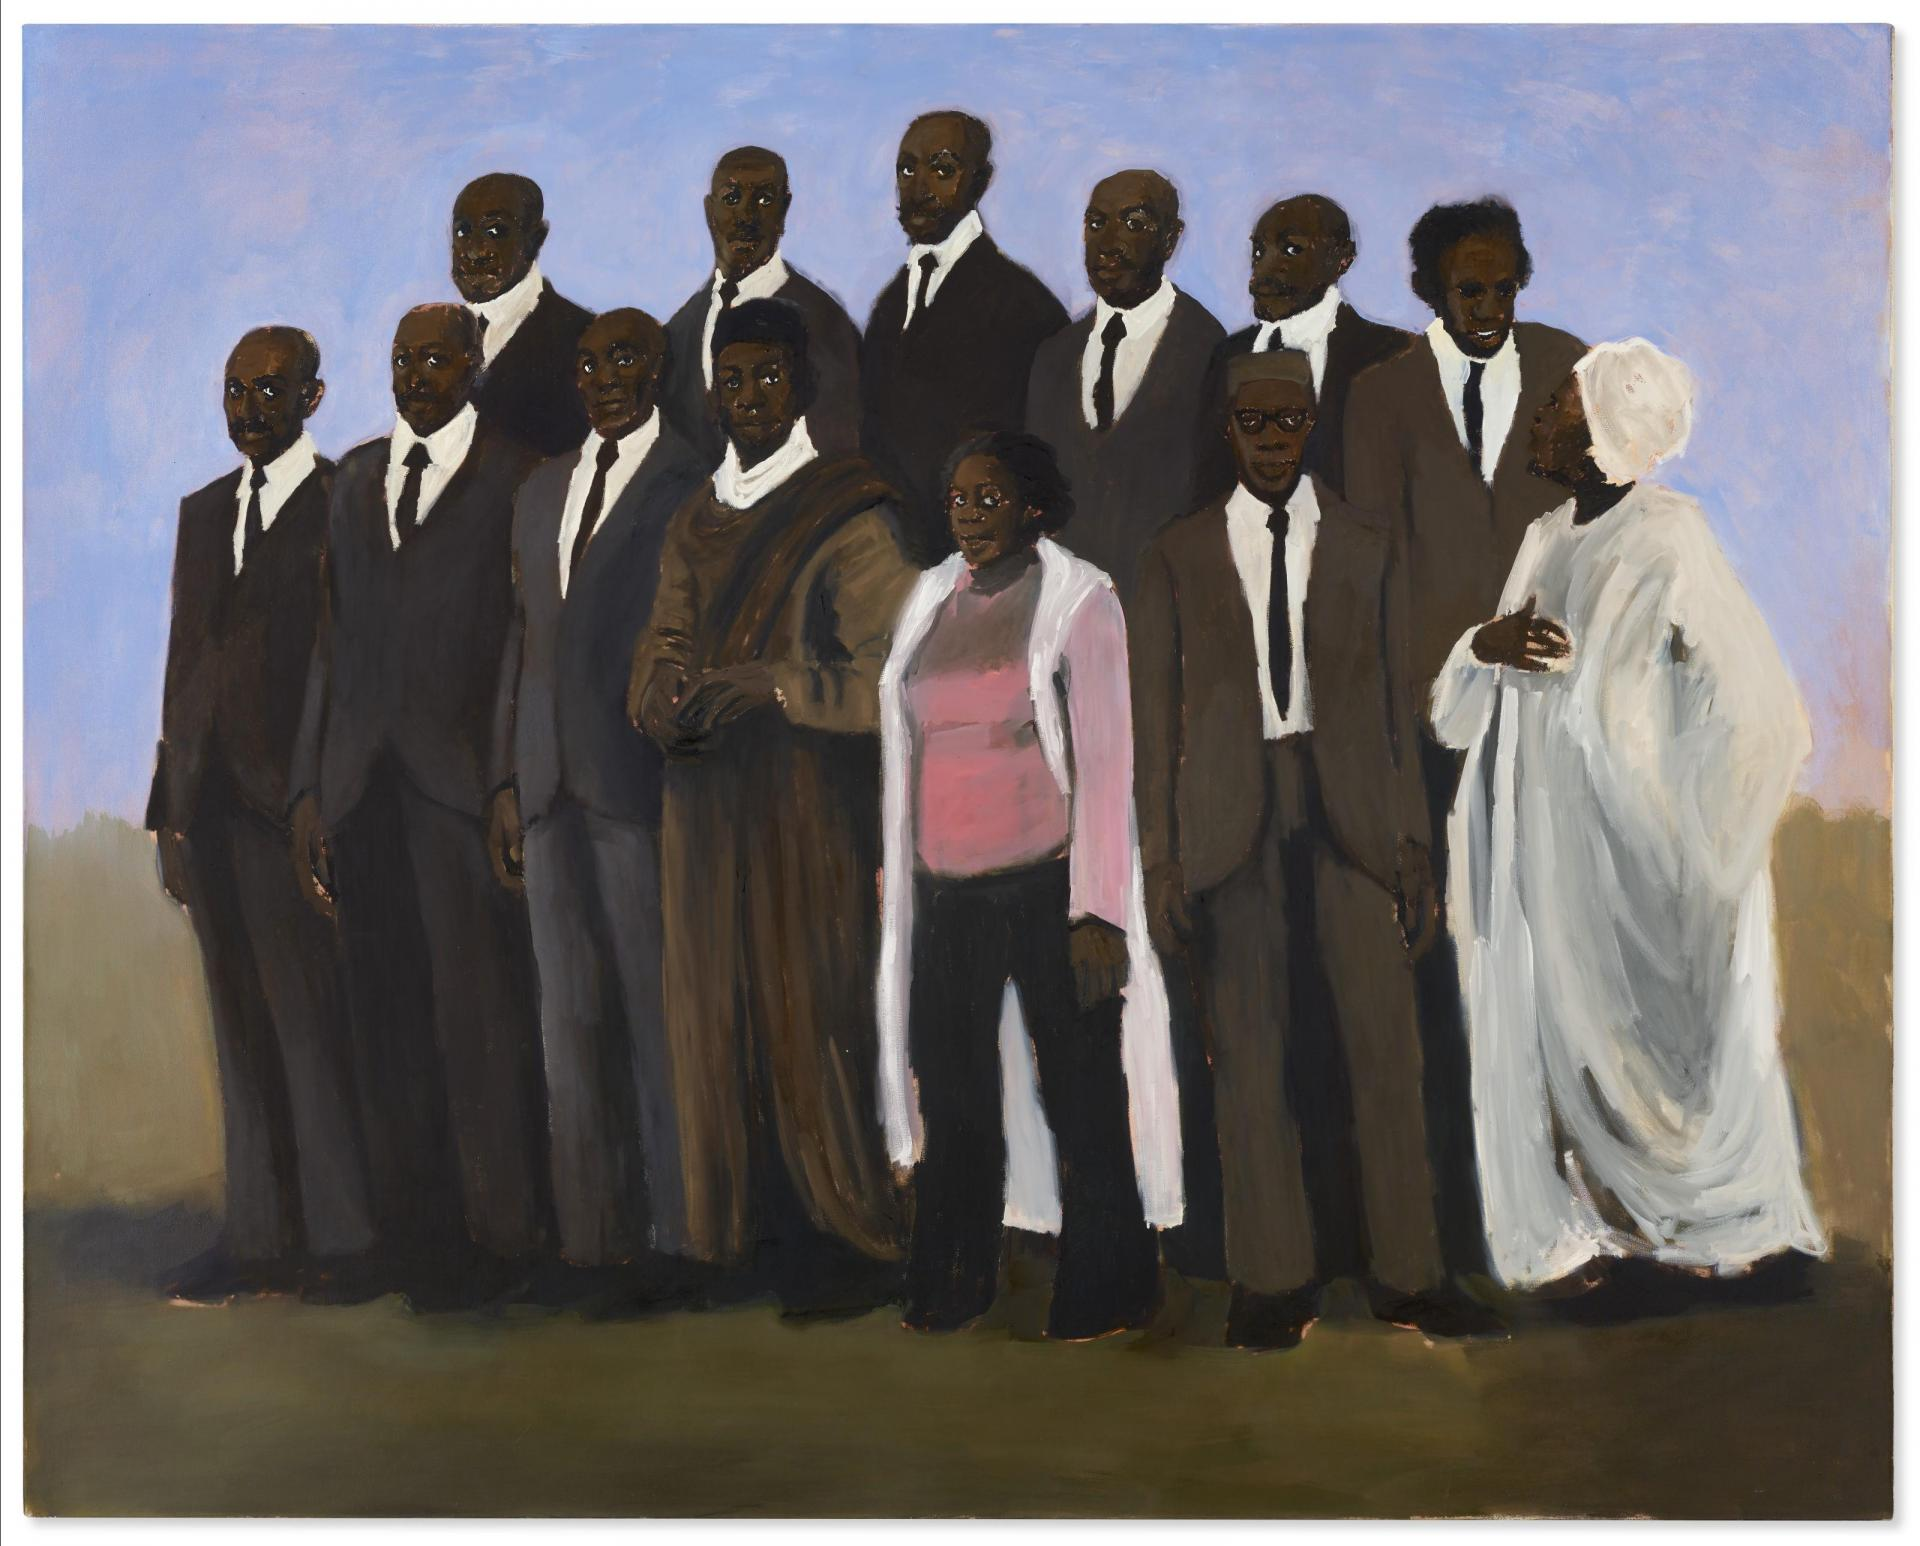 'Diplomacy III' by British artist Lynette Yiadom-Boakye was sold for $1.95 million on Tuesday. Photo: Christies.com